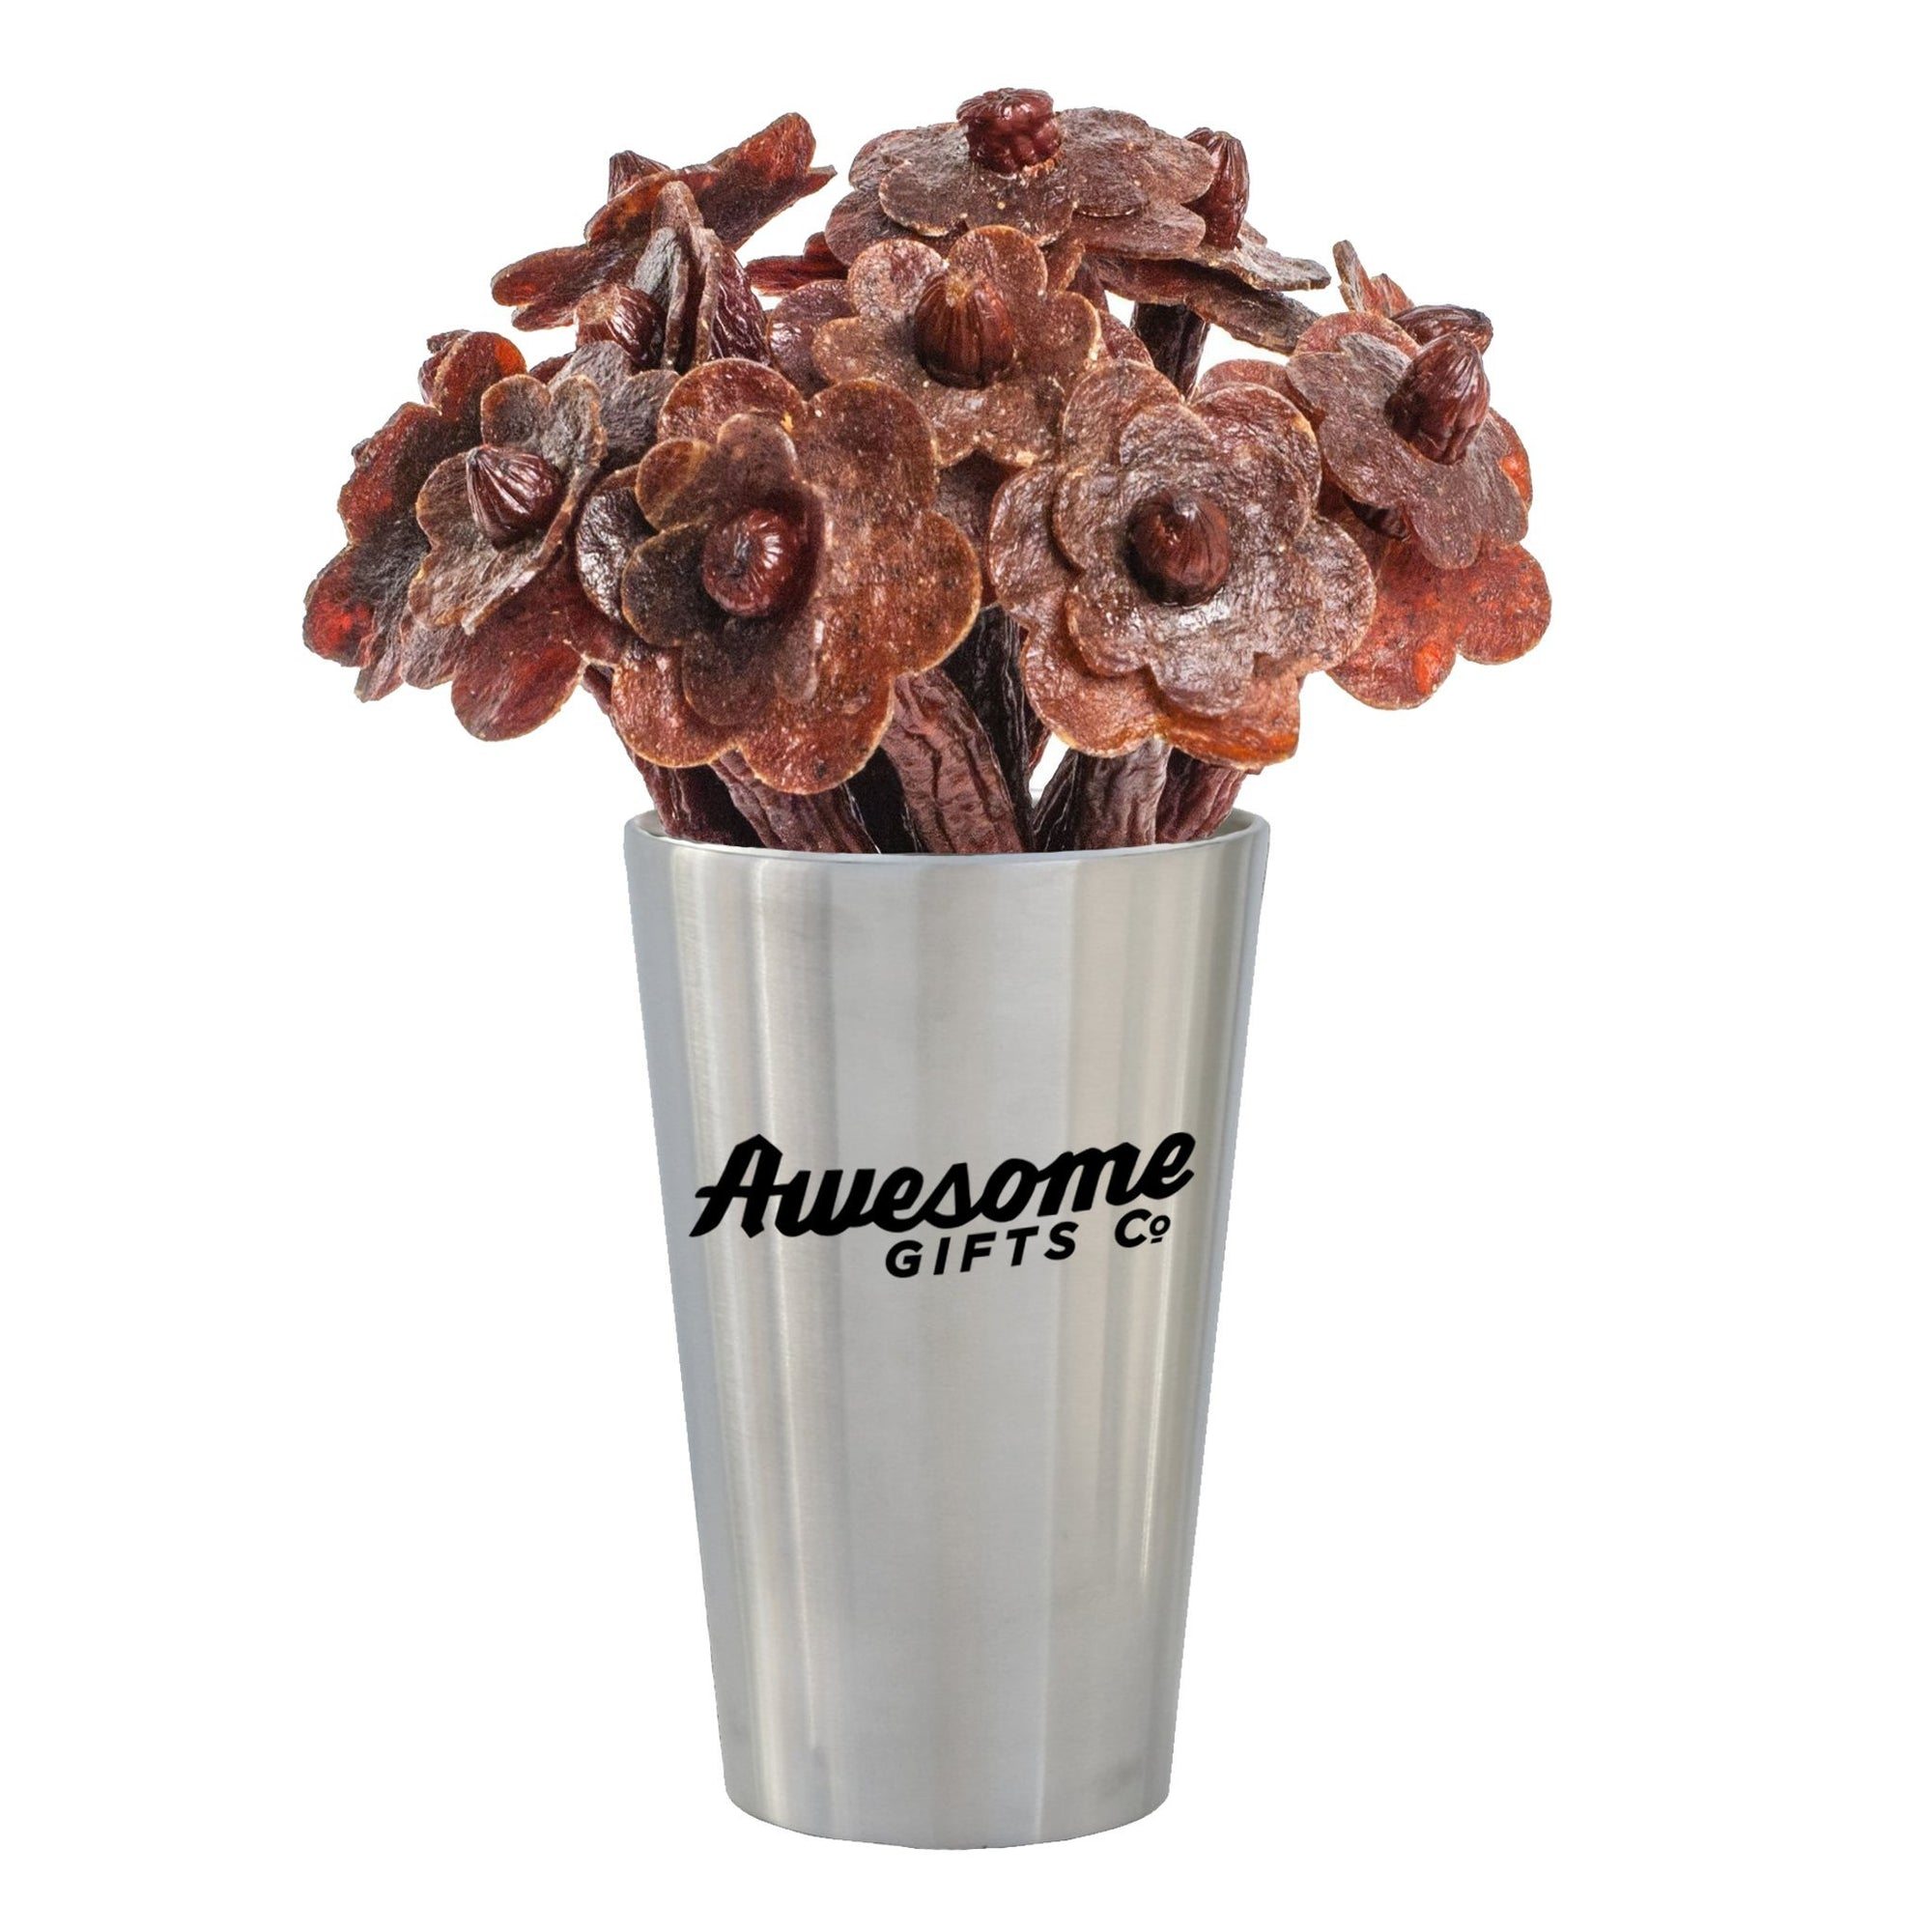 Beef Jerky Flower Bouquet - Stainless Steel Edition